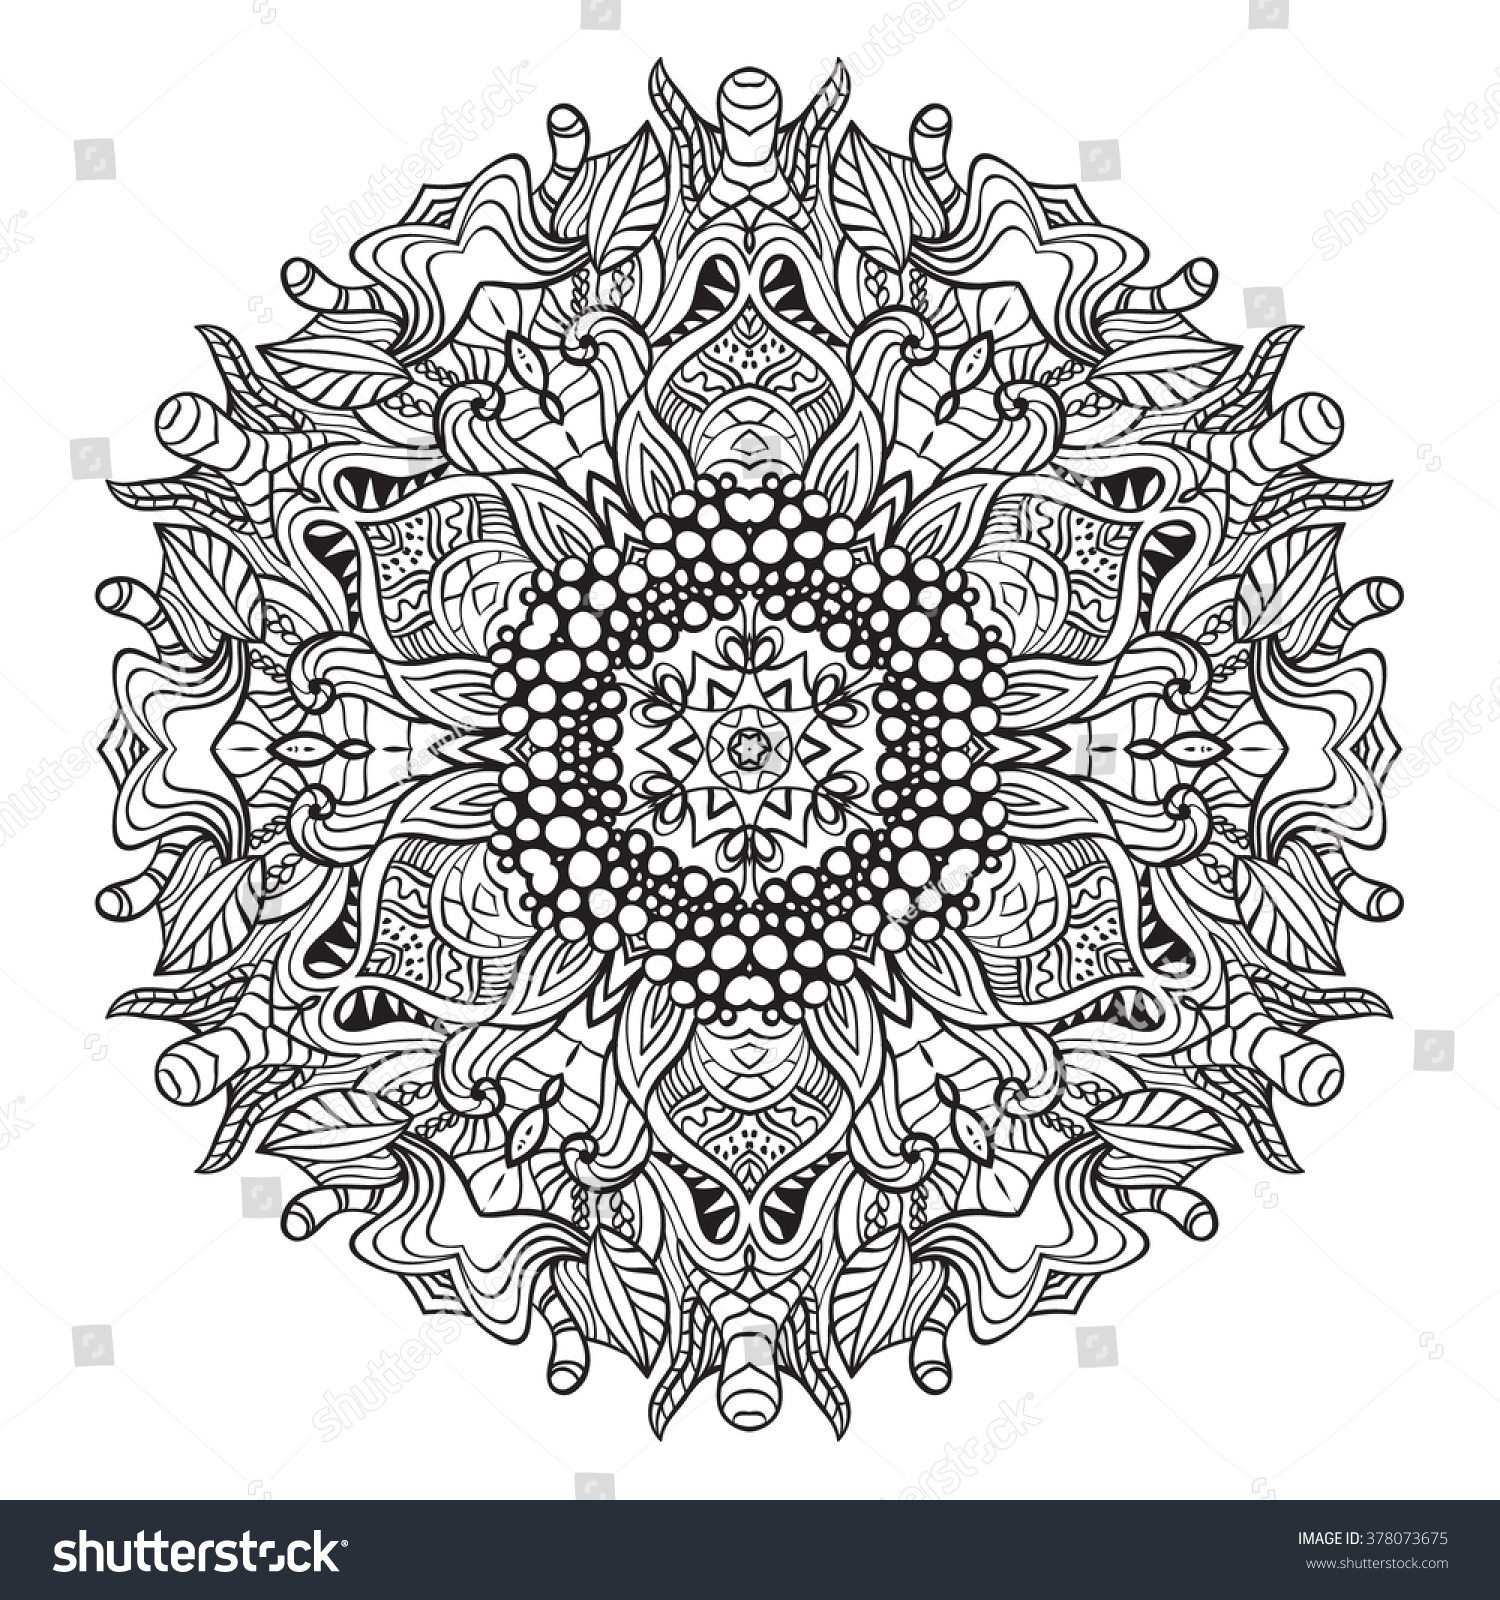 Coloring Pages Chakra Mandala Coloring Pages chakra mandala coloring pages eassume com 1000 images about india on pinterest coloring